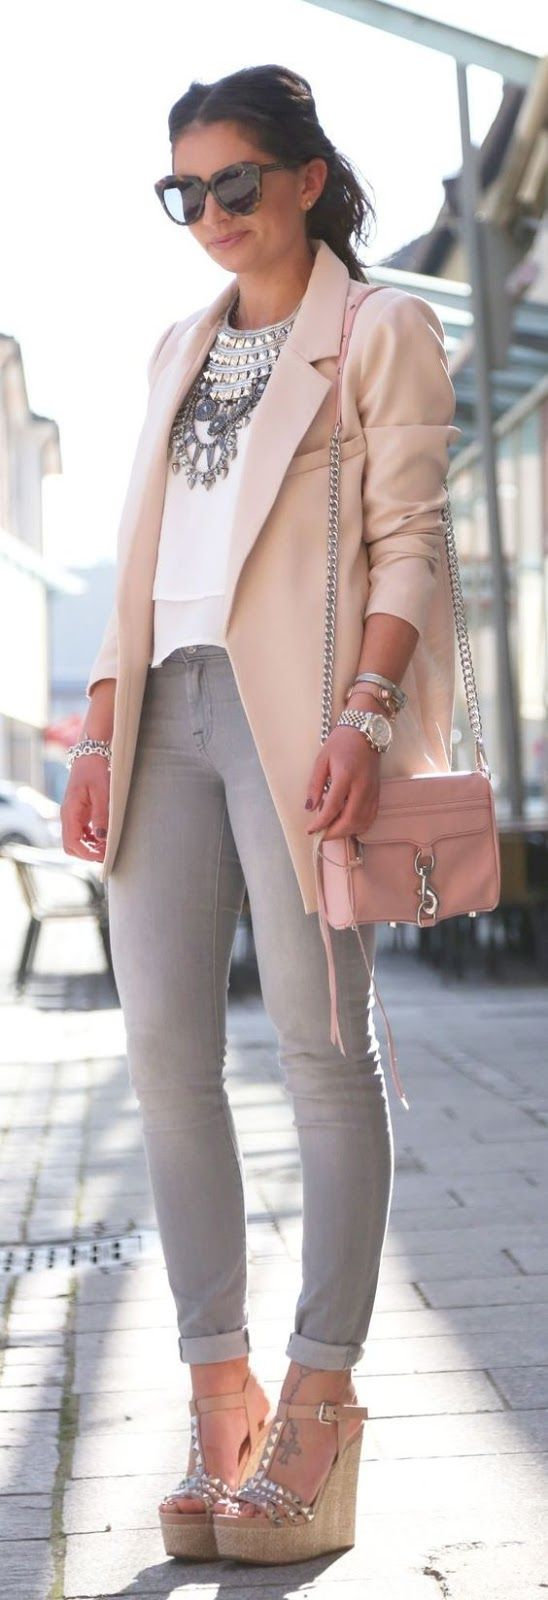 Spring look | Blush blazer, statement necklace, studded wedge sandals and grey skinnies